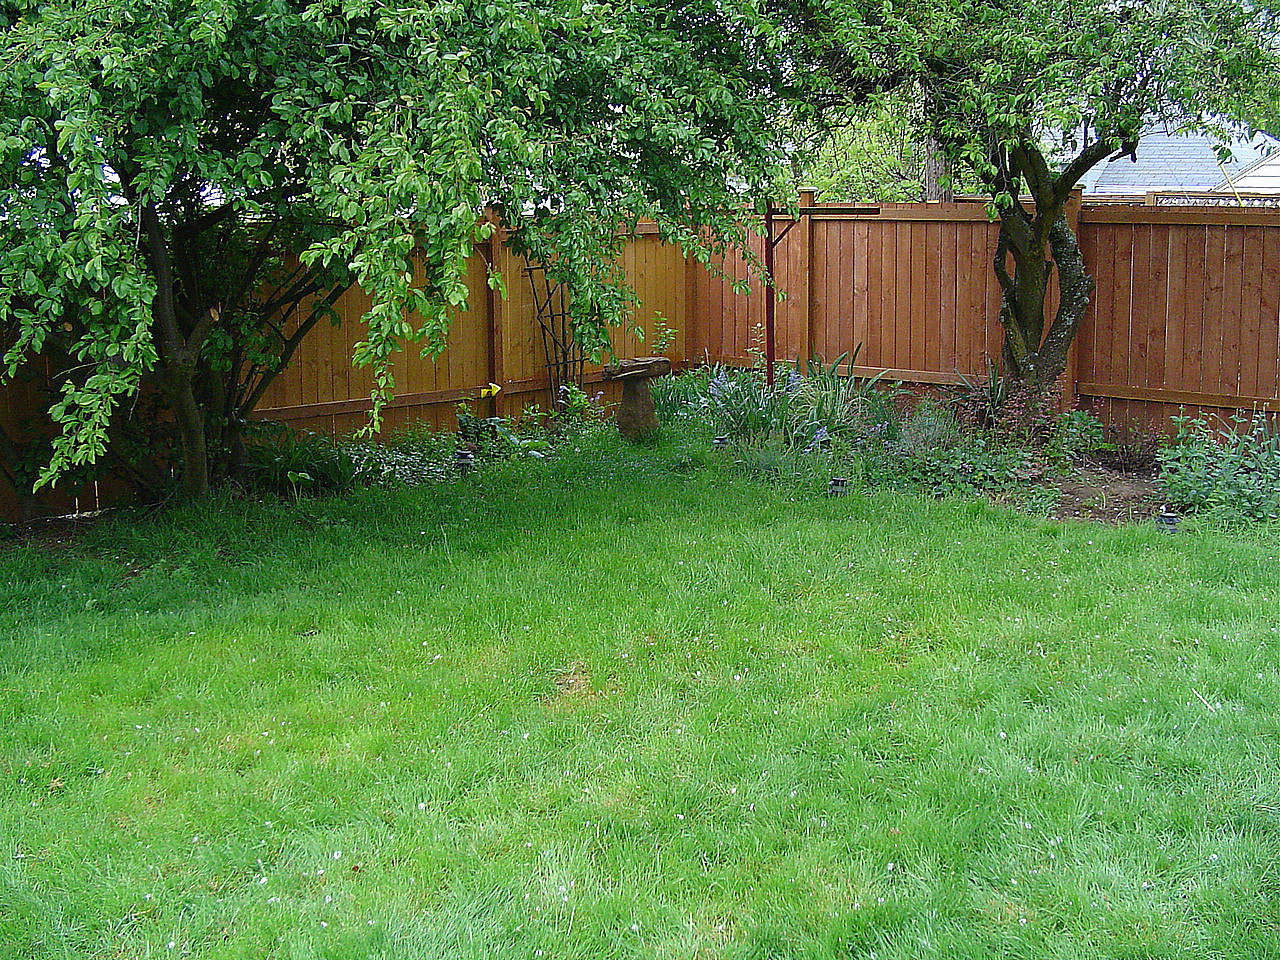 Fence Backyard Privacy :  built it Pretty easy I also had a chain link fence to deal with